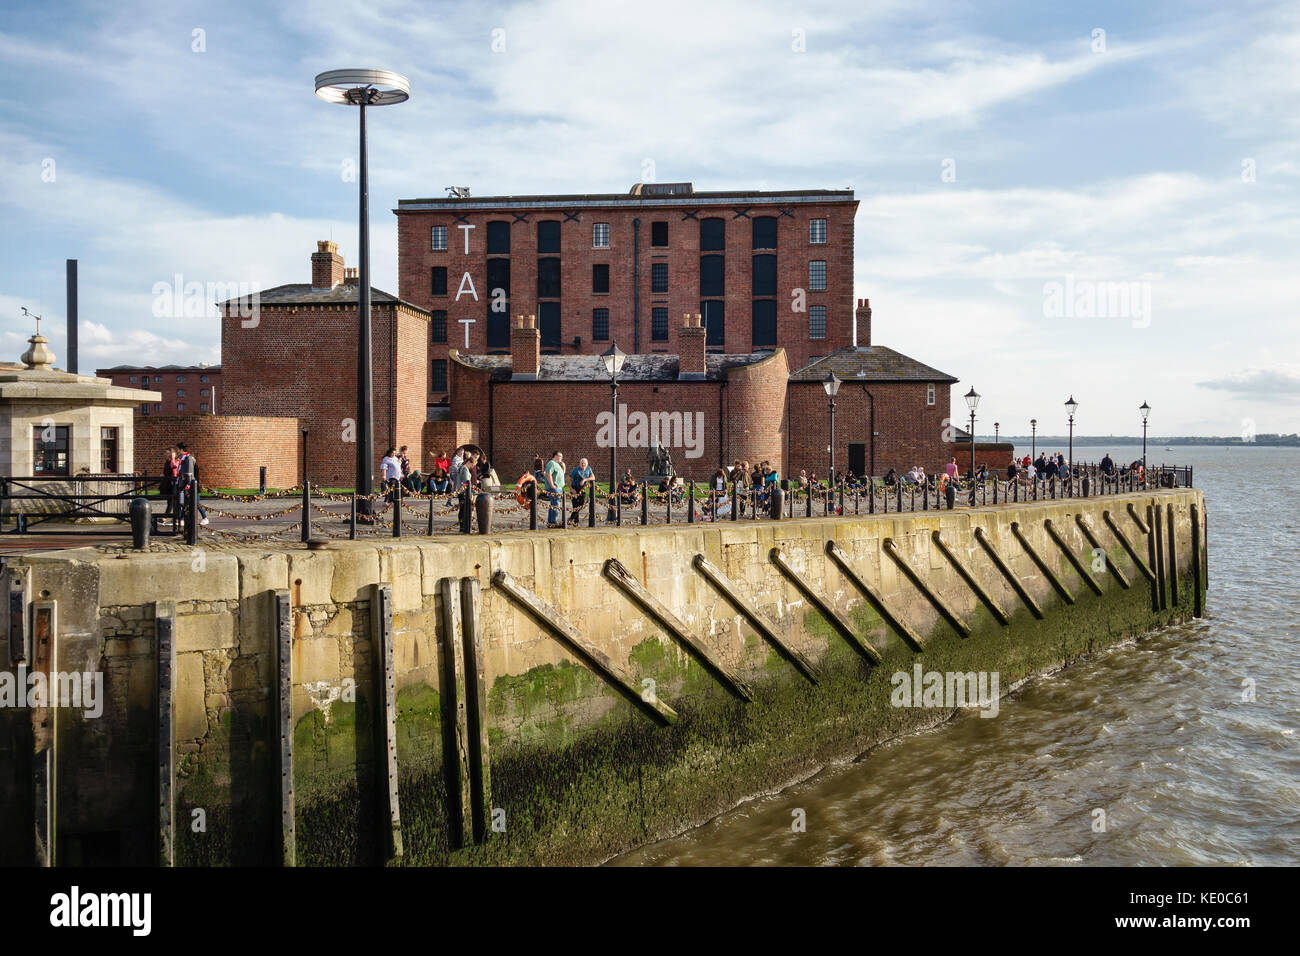 Pier Head, Liverpool, UK. The Tate Liverpool gallery stands on the restored River Mersey waterfront - Stock Image